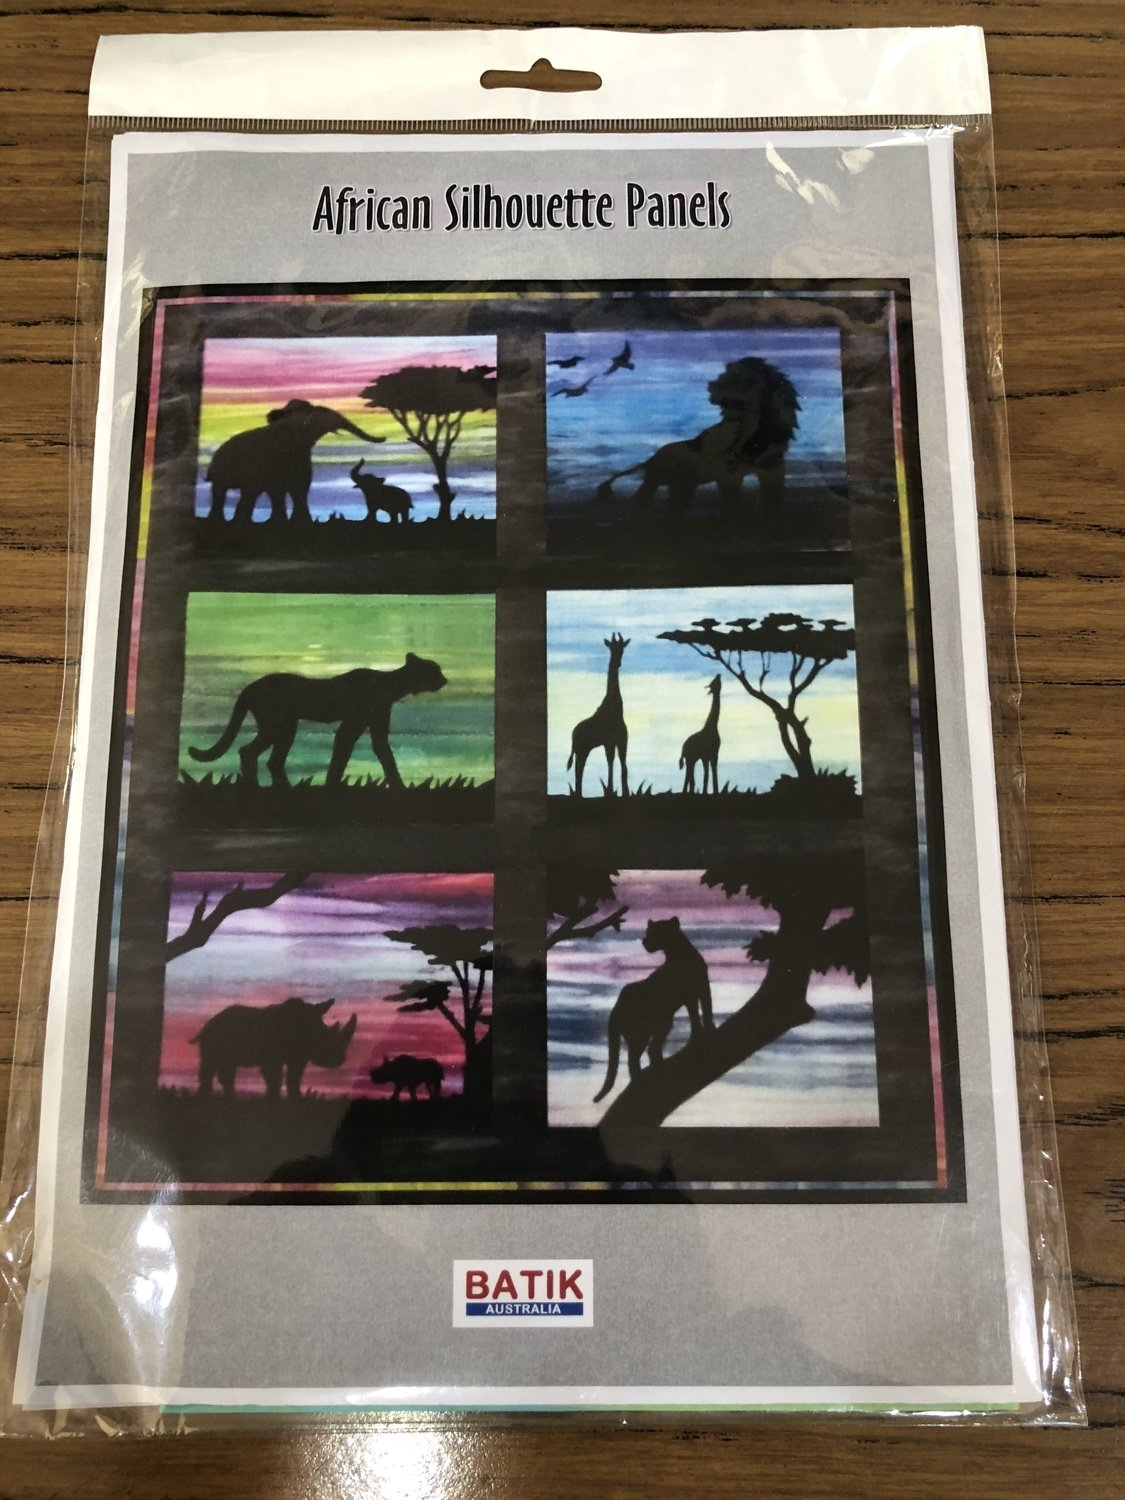 Africa Silhouette Panels